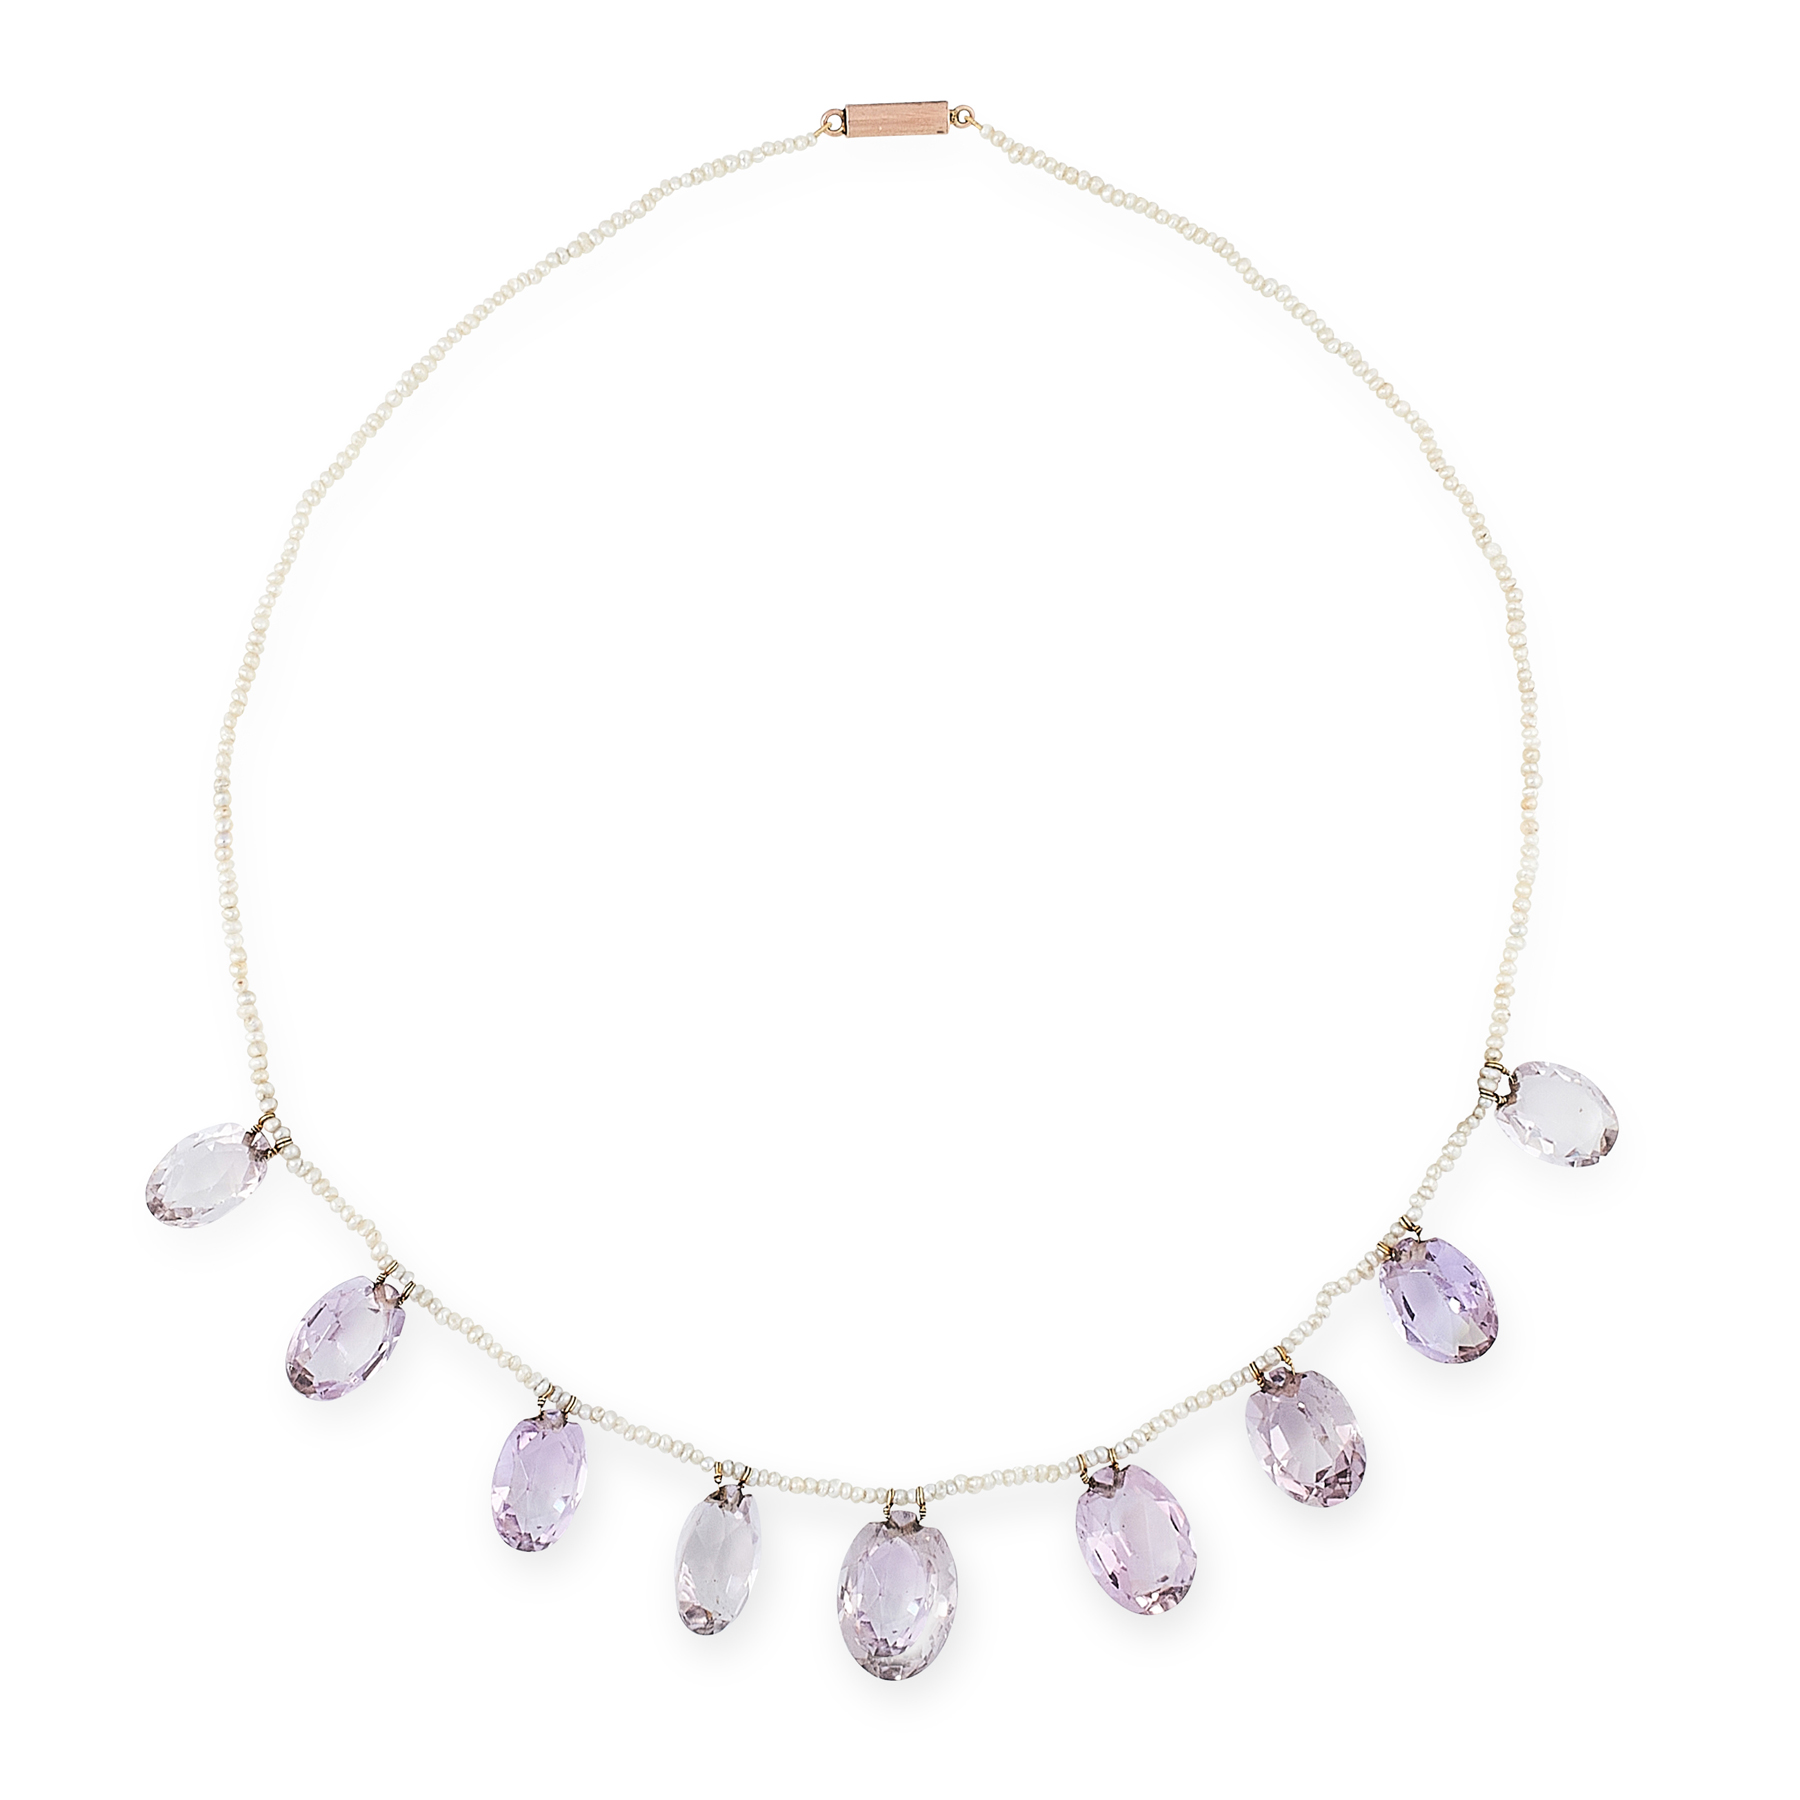 AN ANTIQUE AMETHYST AND SEED PEARL NECKLACE, 19TH CENTURY formed of a single row of seed pearls,